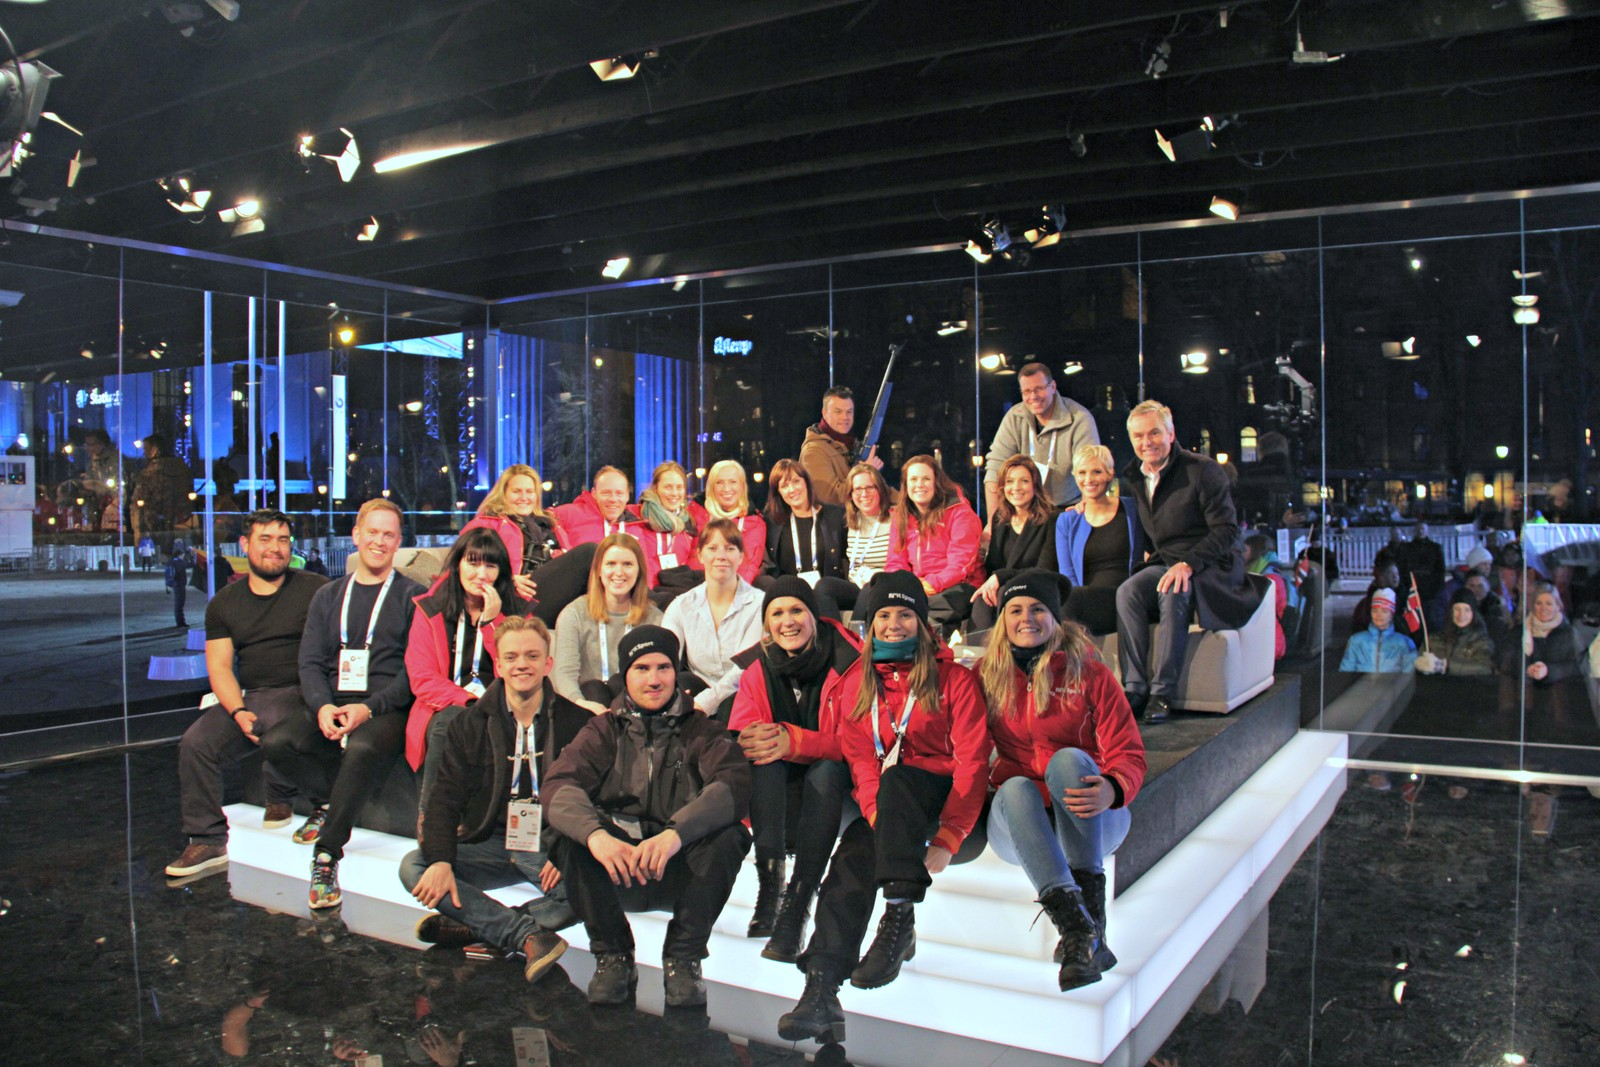 Medal plaza 12 March. The NRK national crew in the studio.